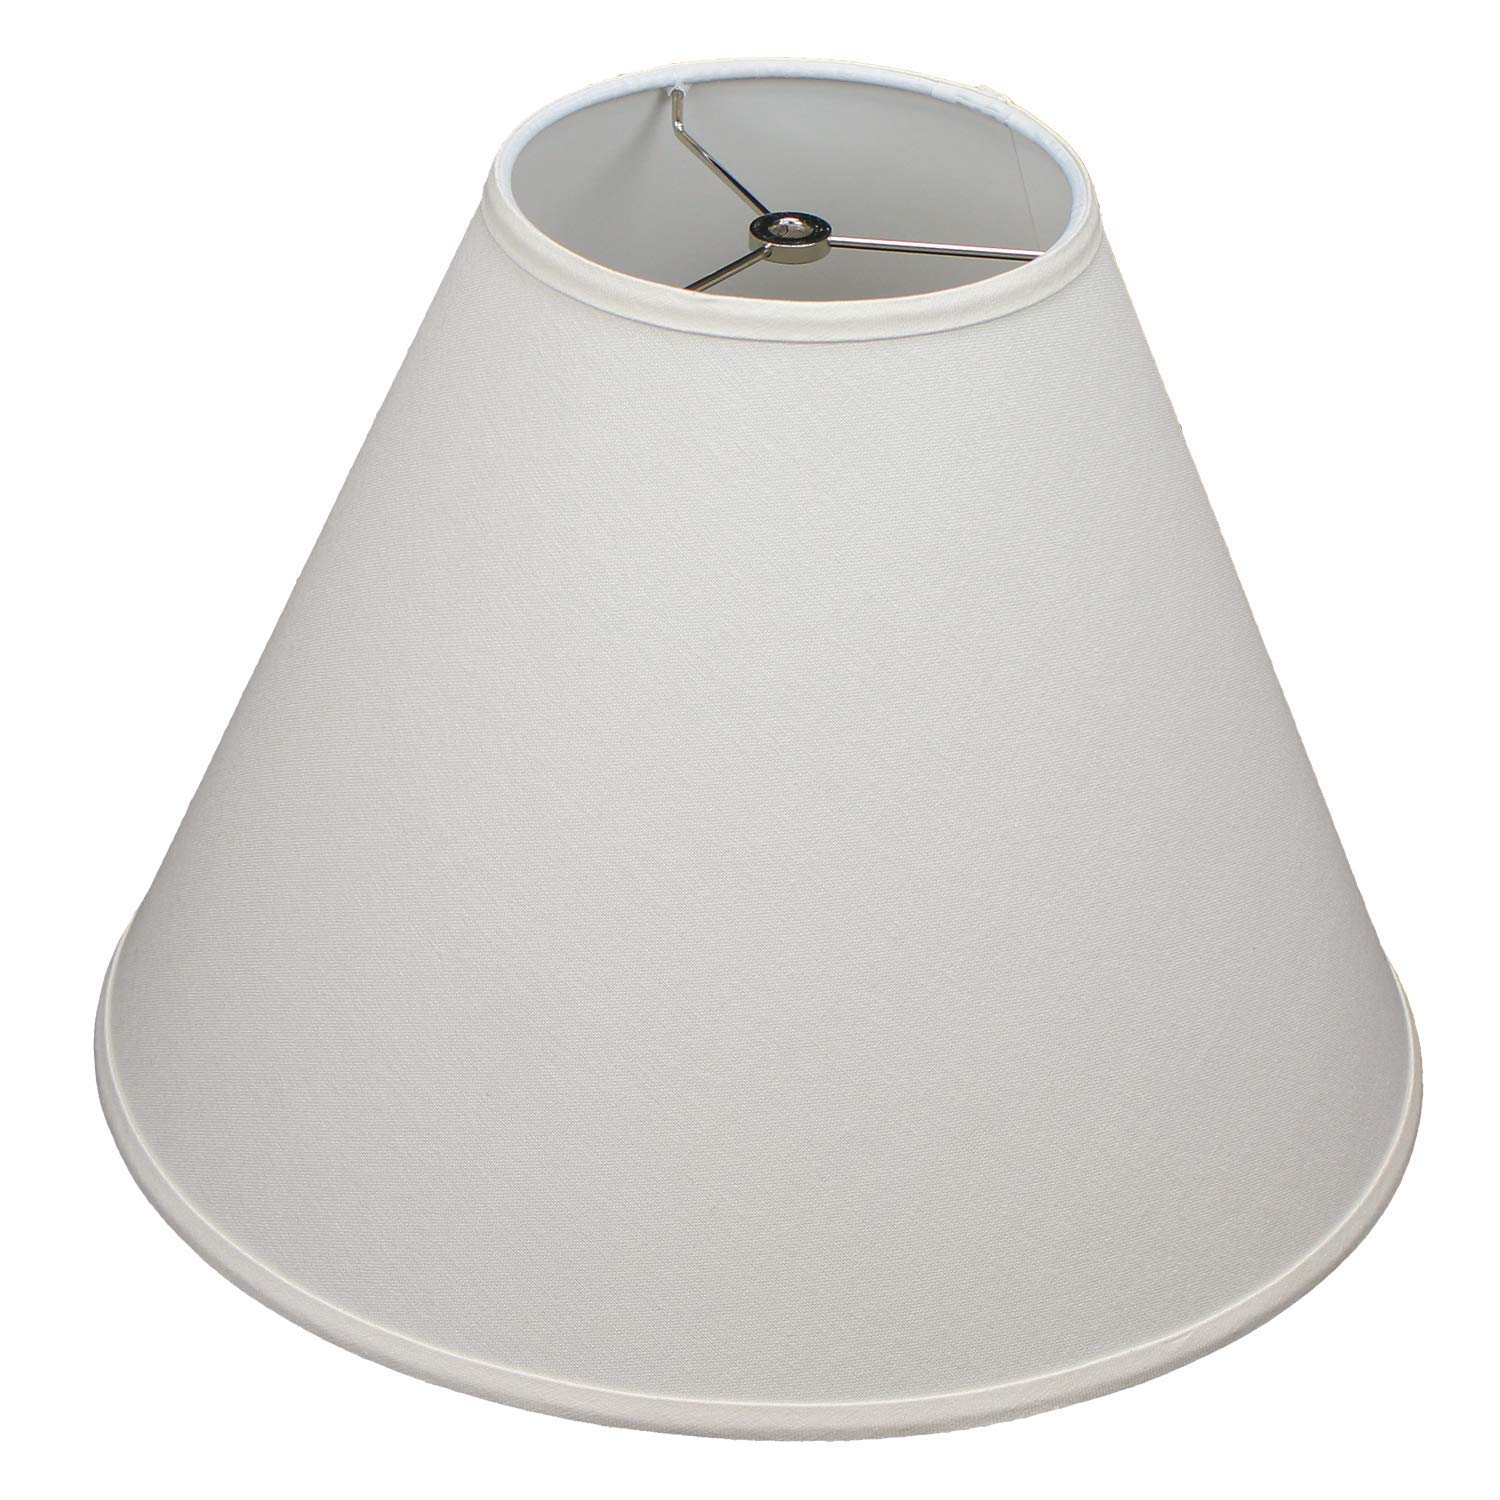 FenchelShades.com Lampshade 7'' Top Diameter x 17'' Bottom Diameter x 13'' Slant Height with Washer (Spider) Attachment for Lamps with a Harp (Cream)